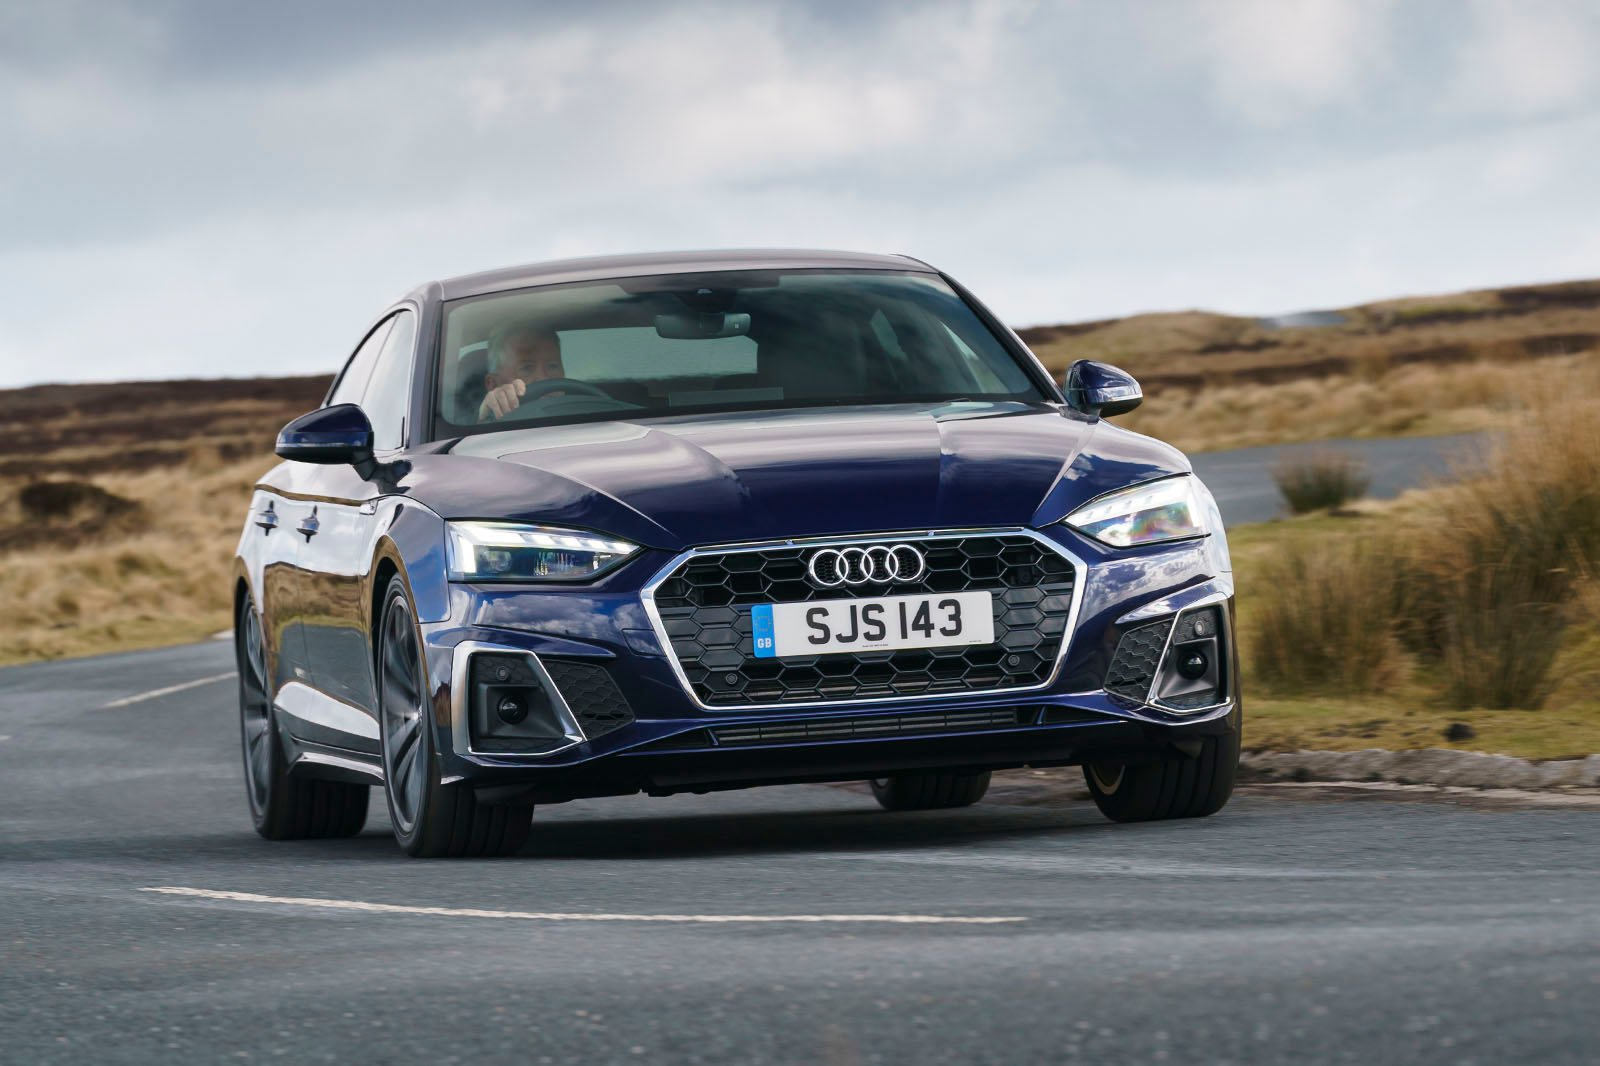 Audi A5 Coupe 2020 RHD front right tracking